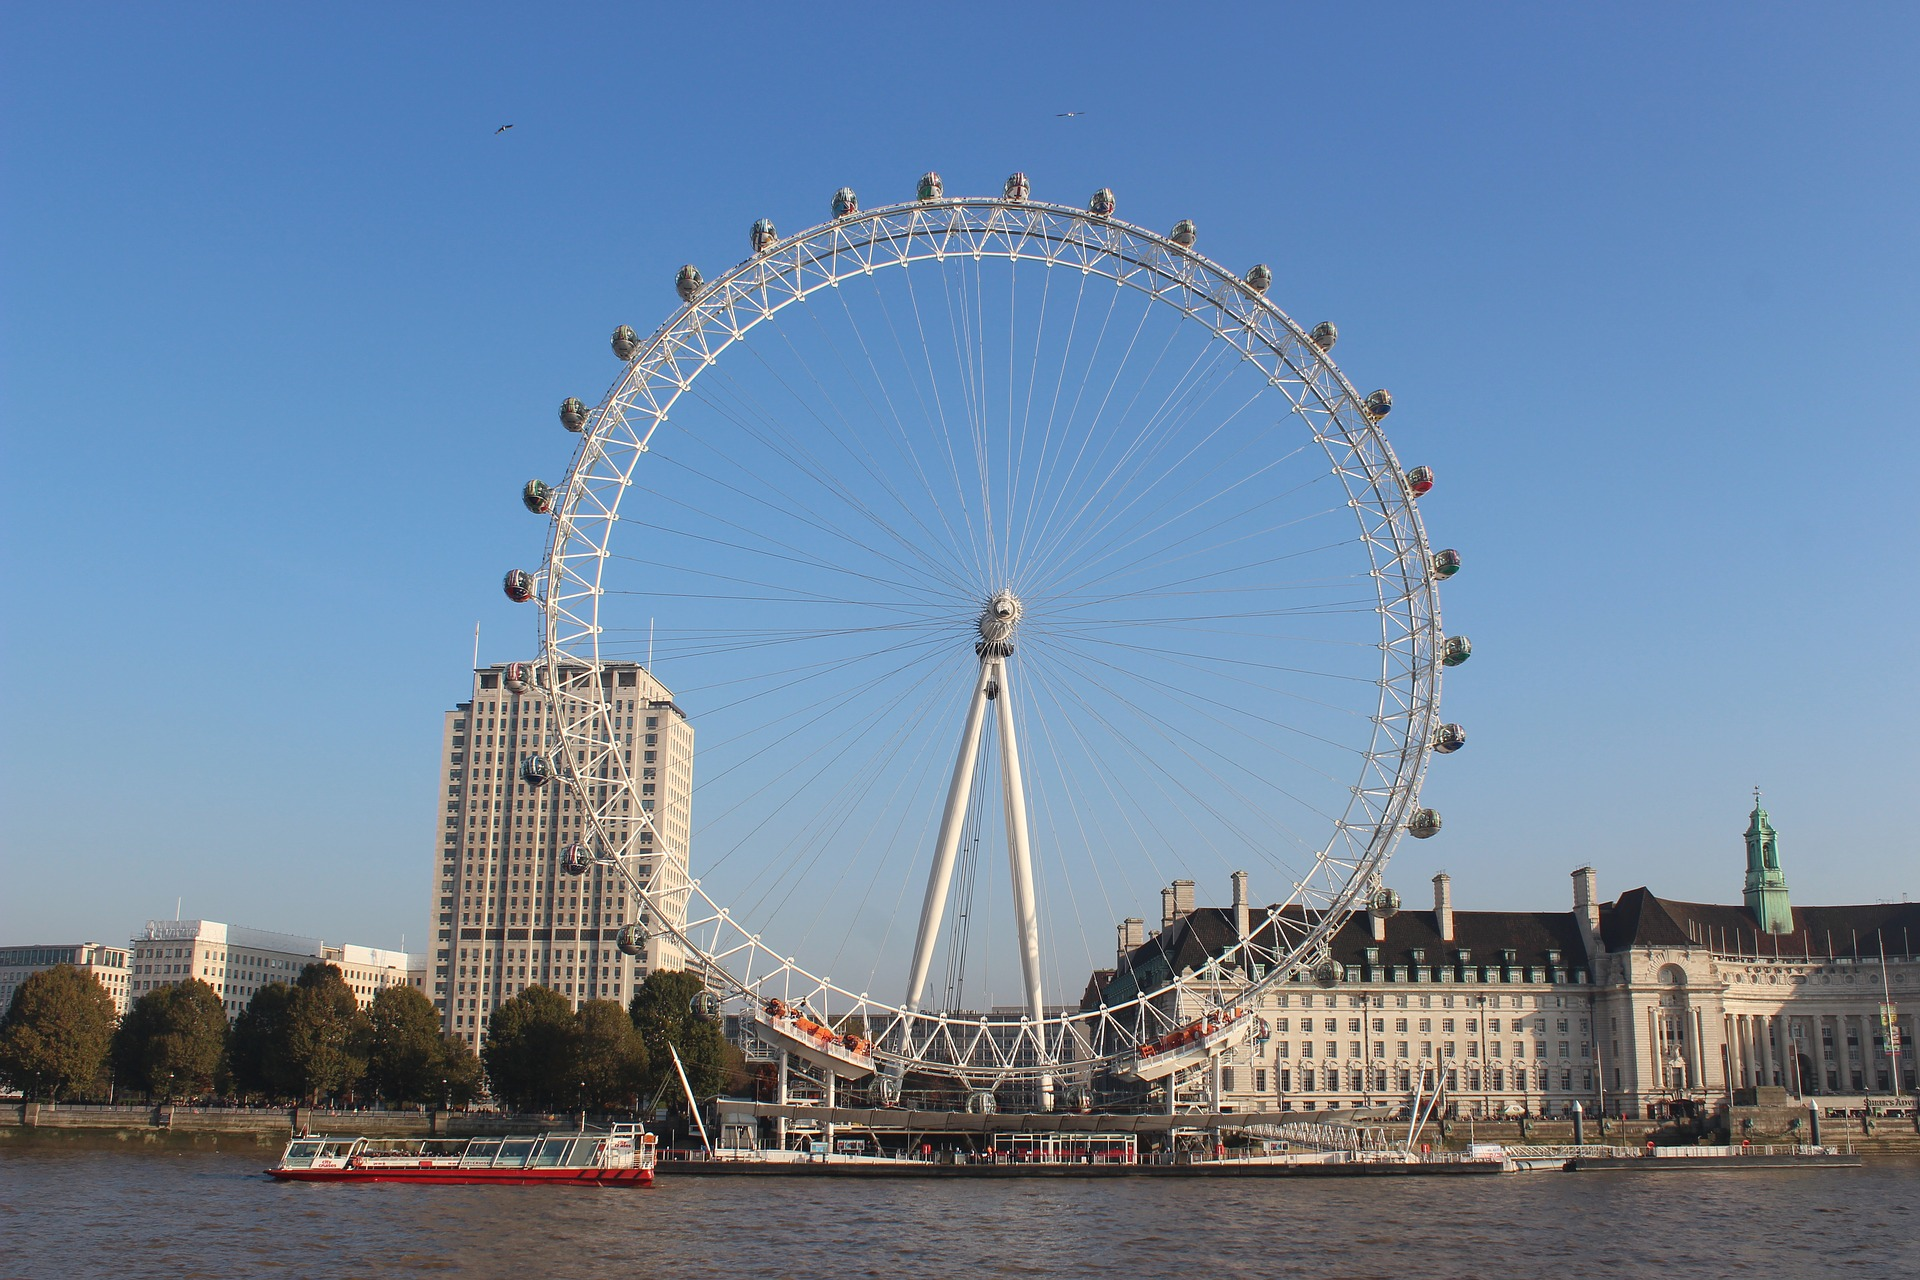 5 Reasons why you should visit the London Eye